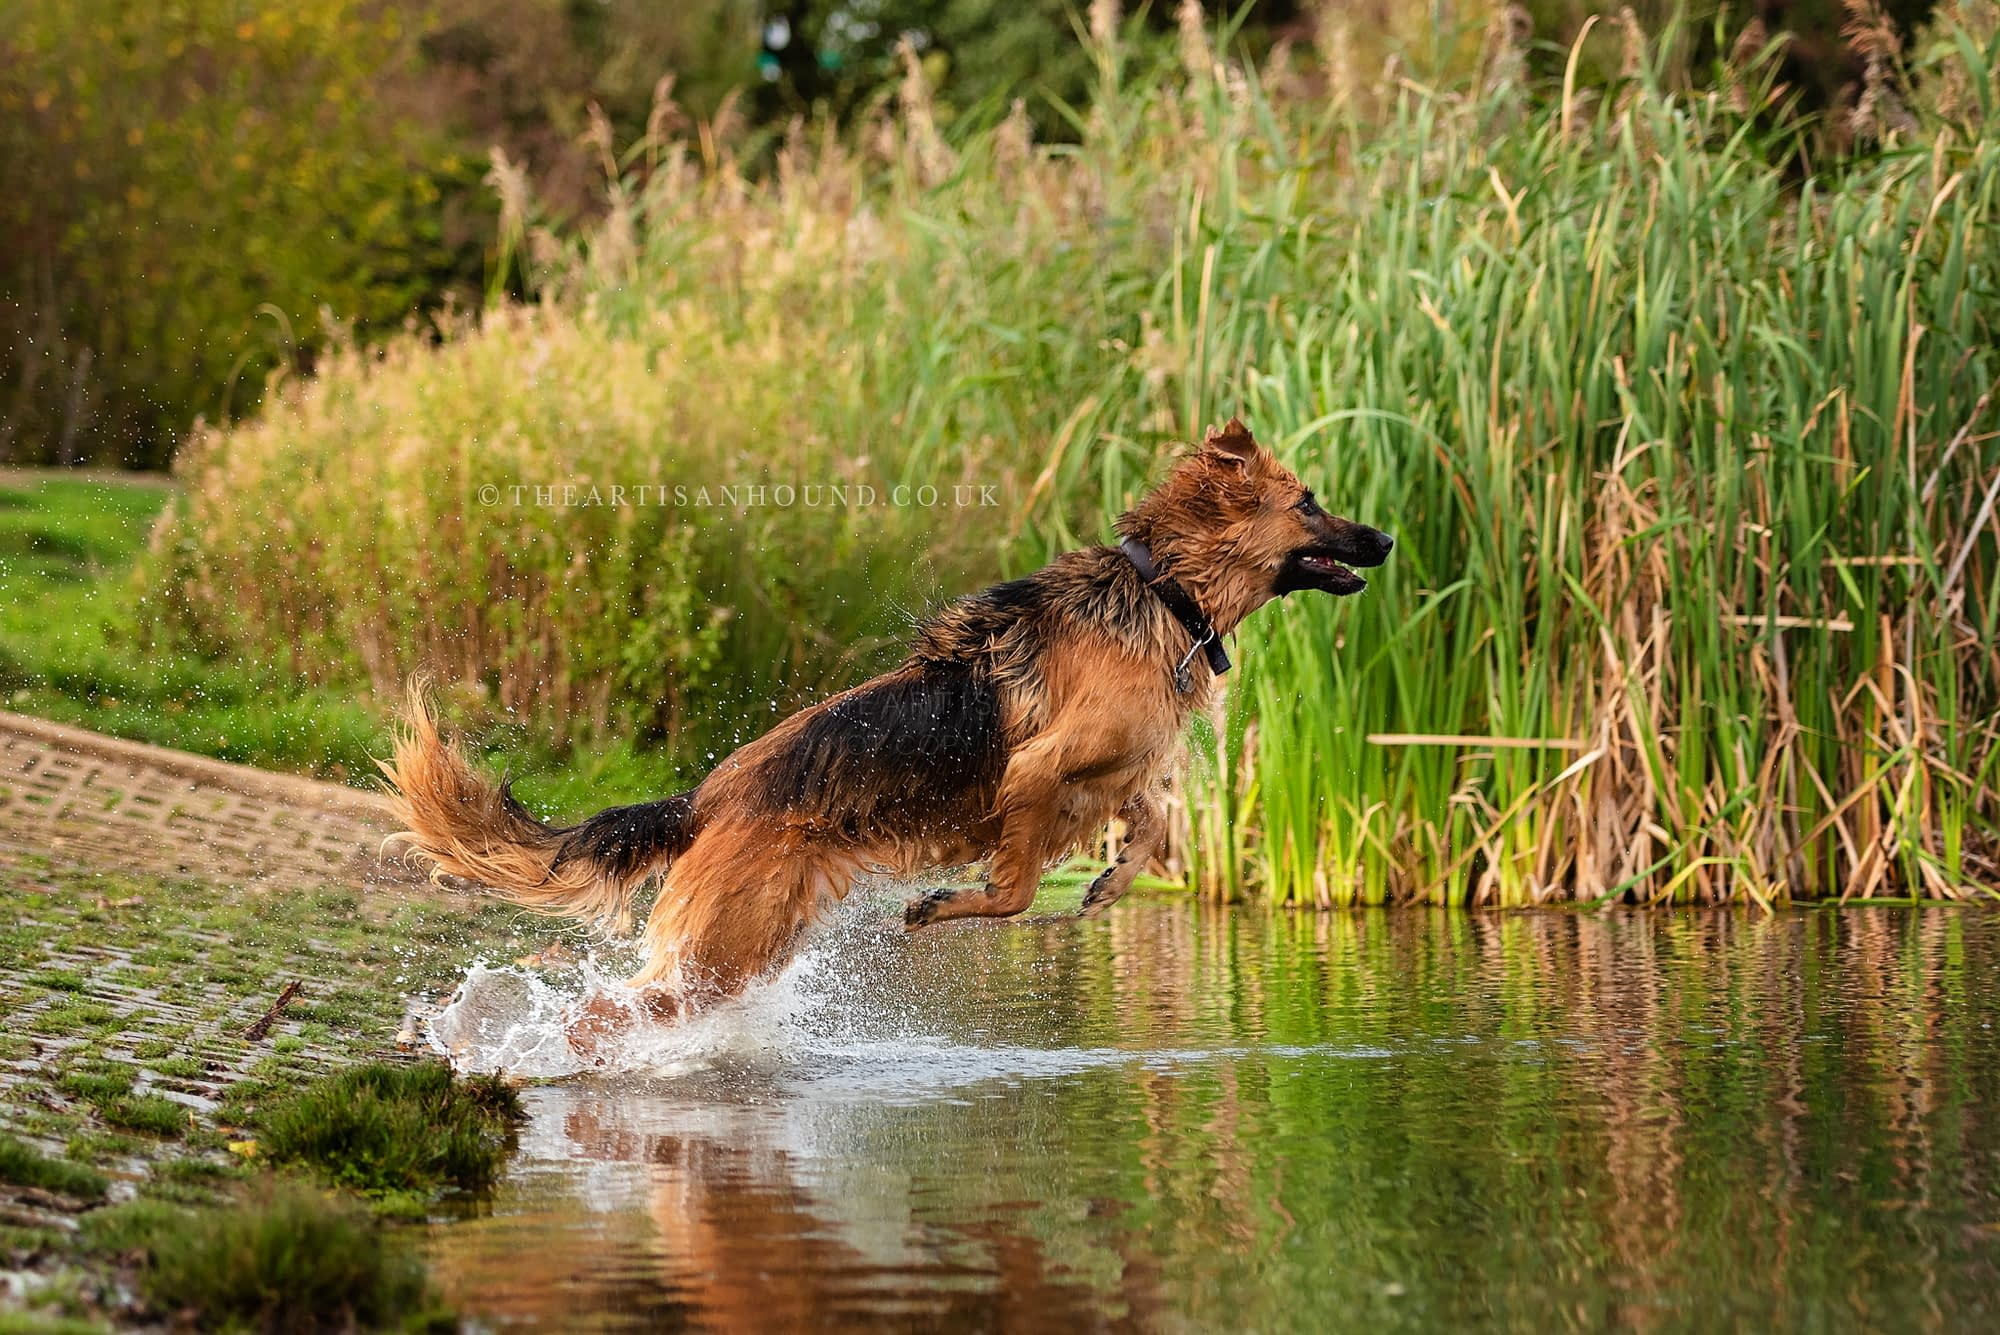 Dogs jumping into water